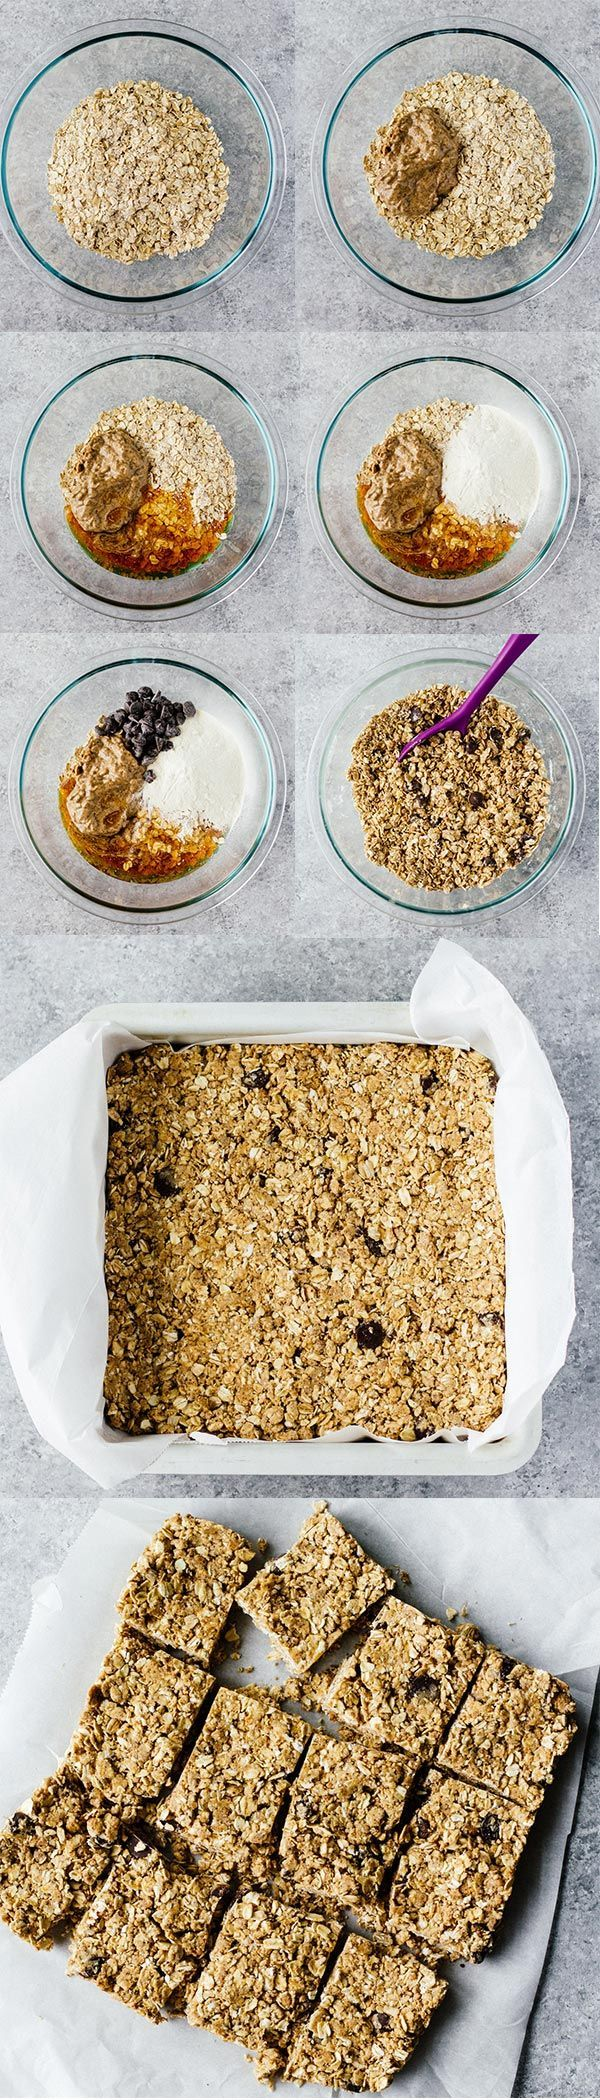 No-Bake Oatmeal Protein Bars! These are gluten free, refined sugar free, and perfect for taking on the go! This recipe is sponsored by LIFEWTR.